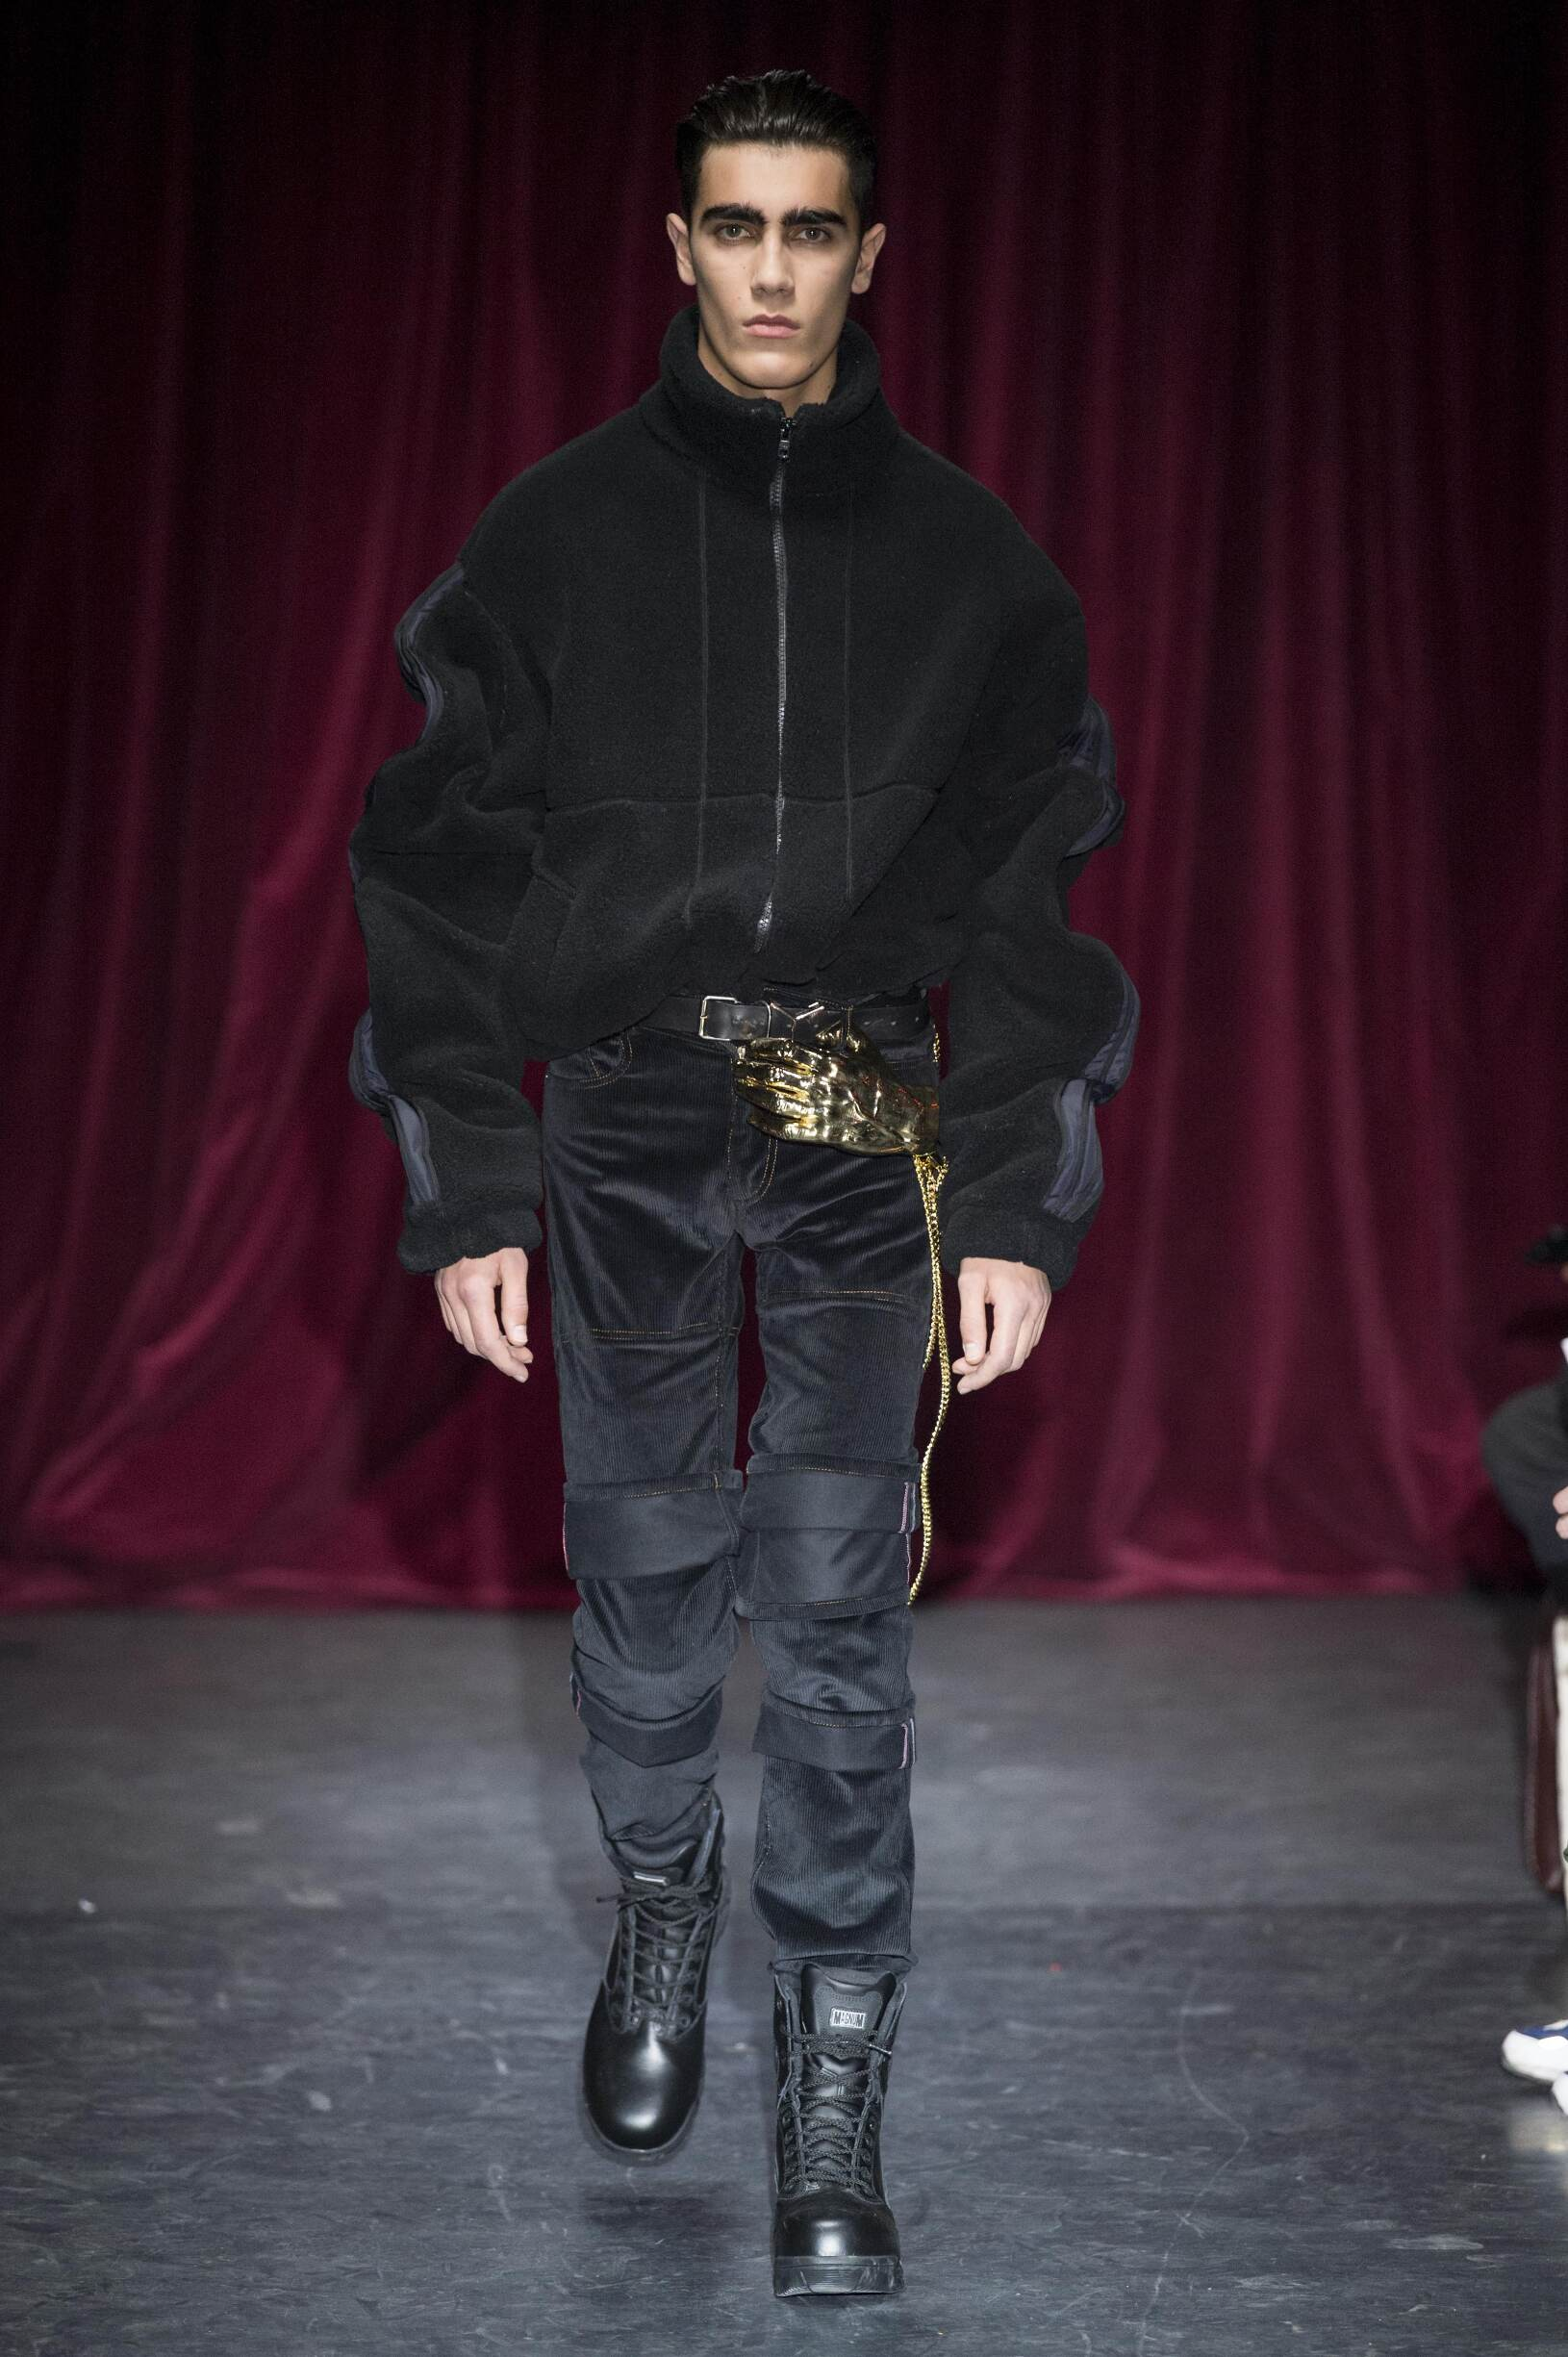 Runway Y/Project Fall Winter 2017 Men's Collection Paris Fashion Week